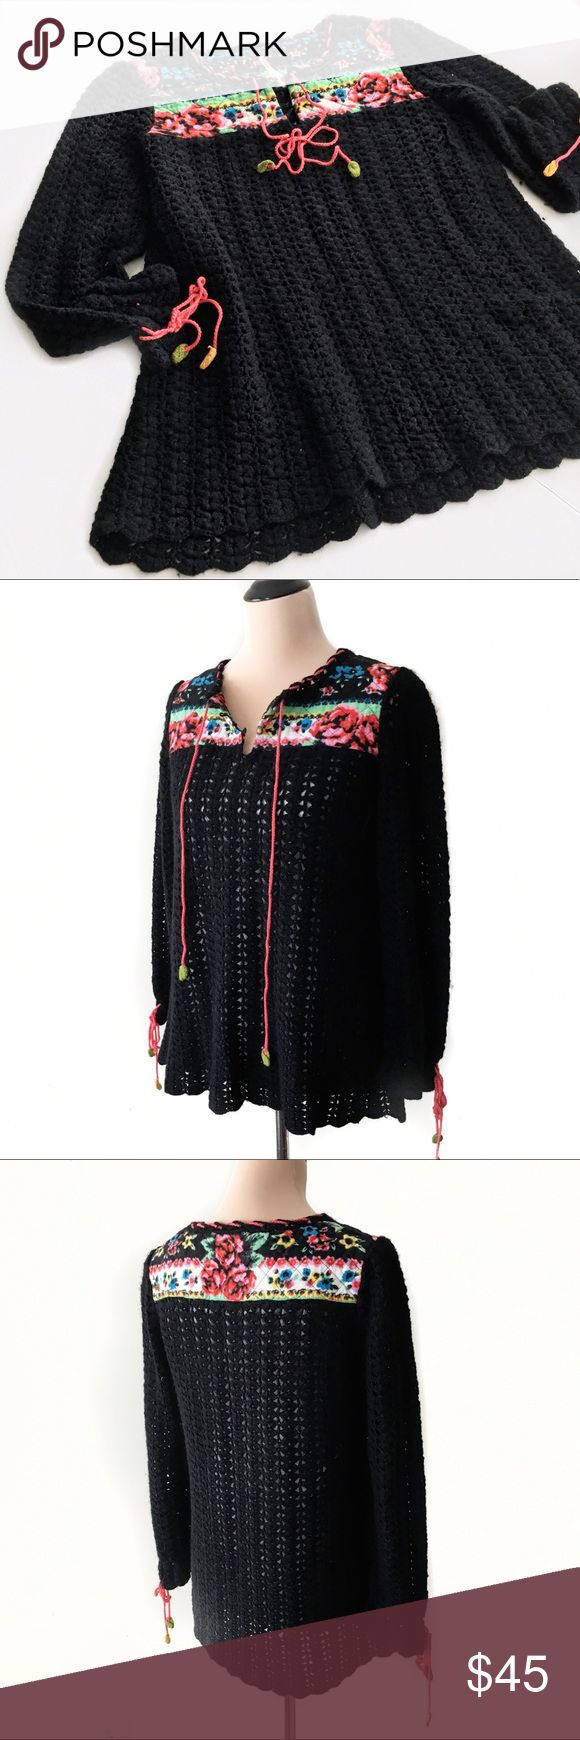 Free People Black Crochet Sweater Beautiful crochet and floral sweater by Free People. Cute granny sweater will look adorable with jeans and boots or a skirt and tights. In great condition. No tears, stains or pulls. Offers always welcome! Sorry no trades. Free People Sweaters